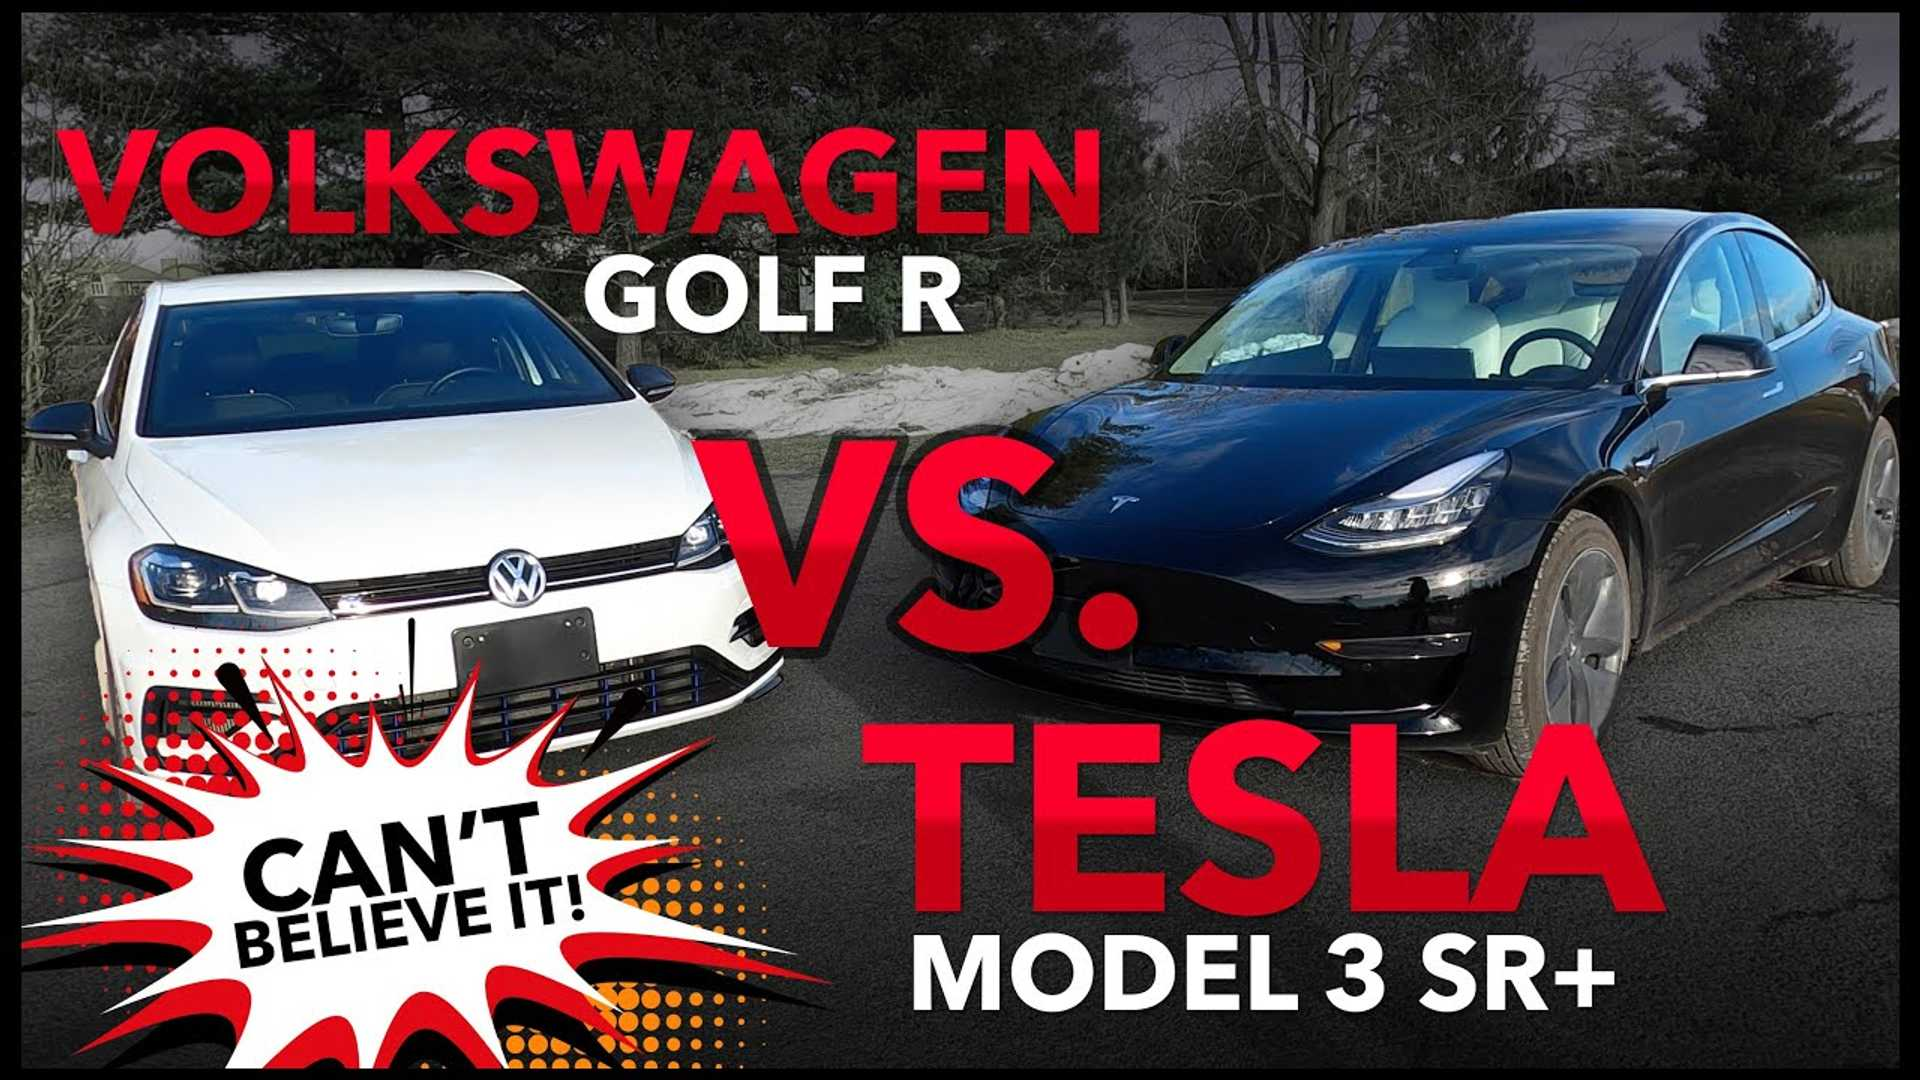 Tesla Model 3 SR+ Vs VW Golf R: The Race Results May Surprise You